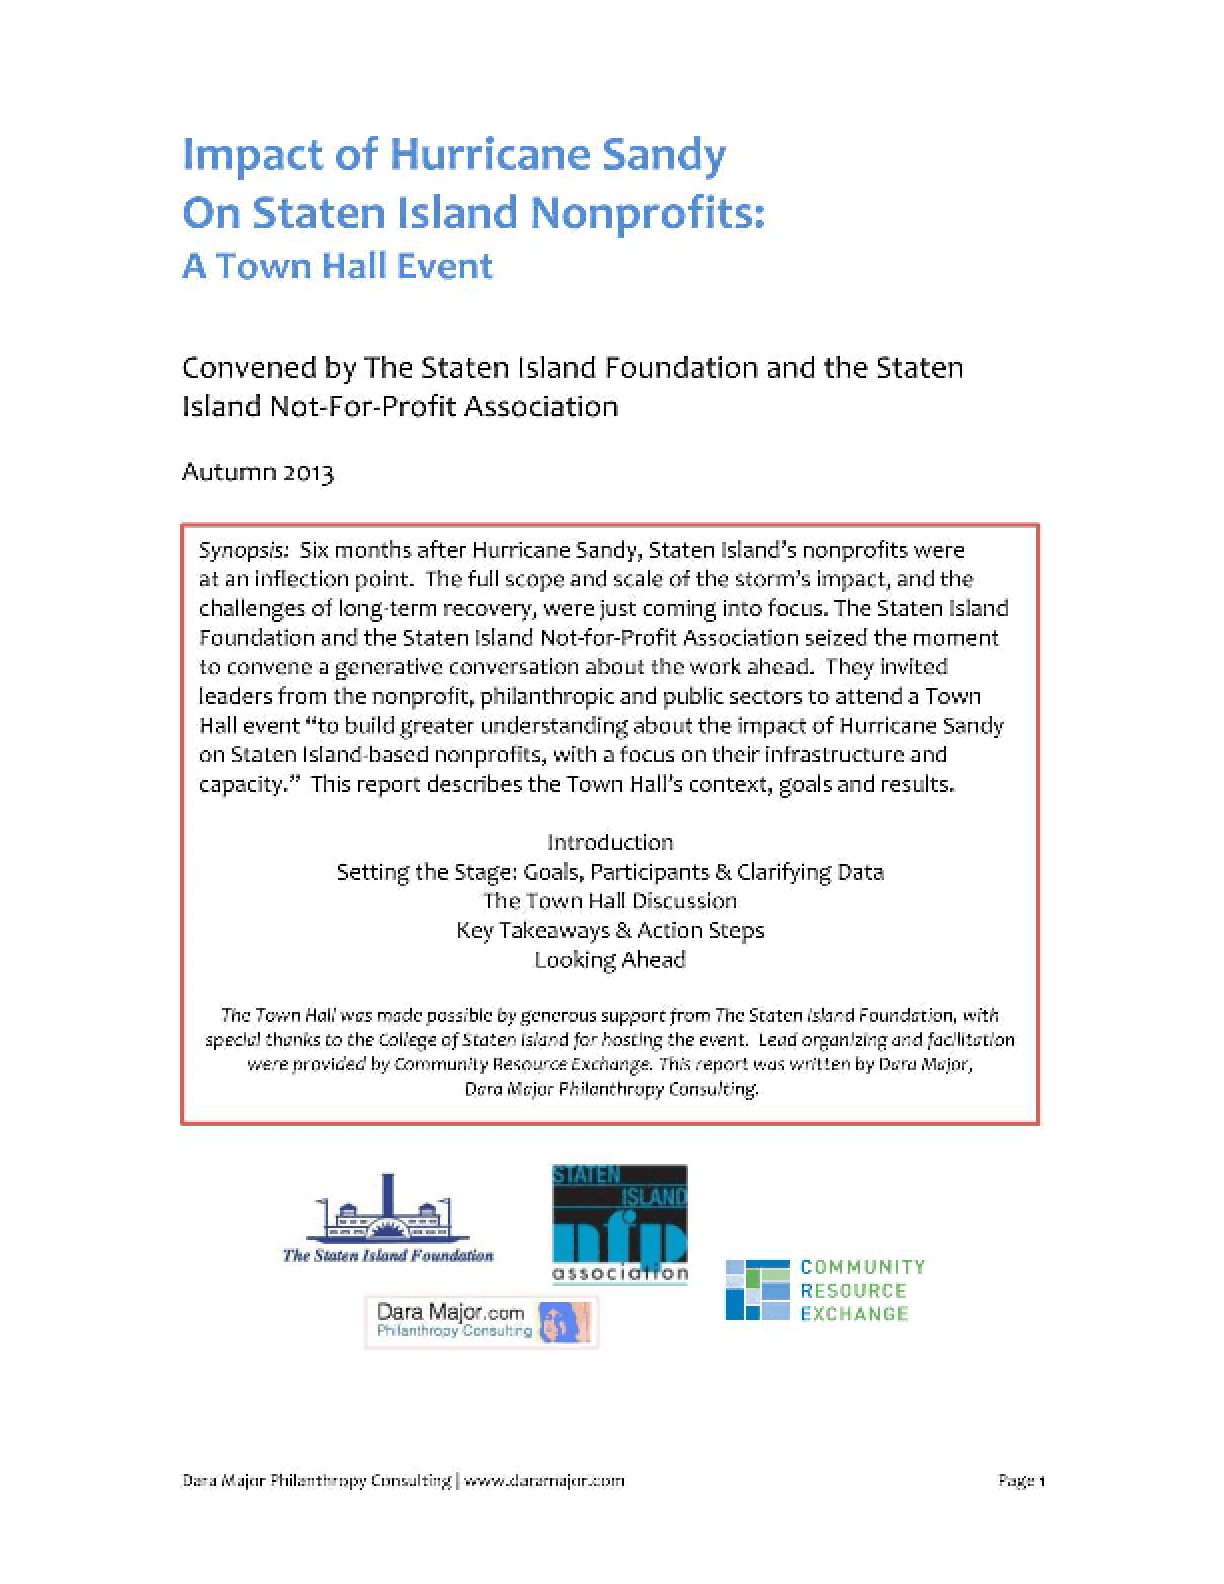 Impact of Hurricane Sandy on Staten Island Nonprofits: A Town Hall Event